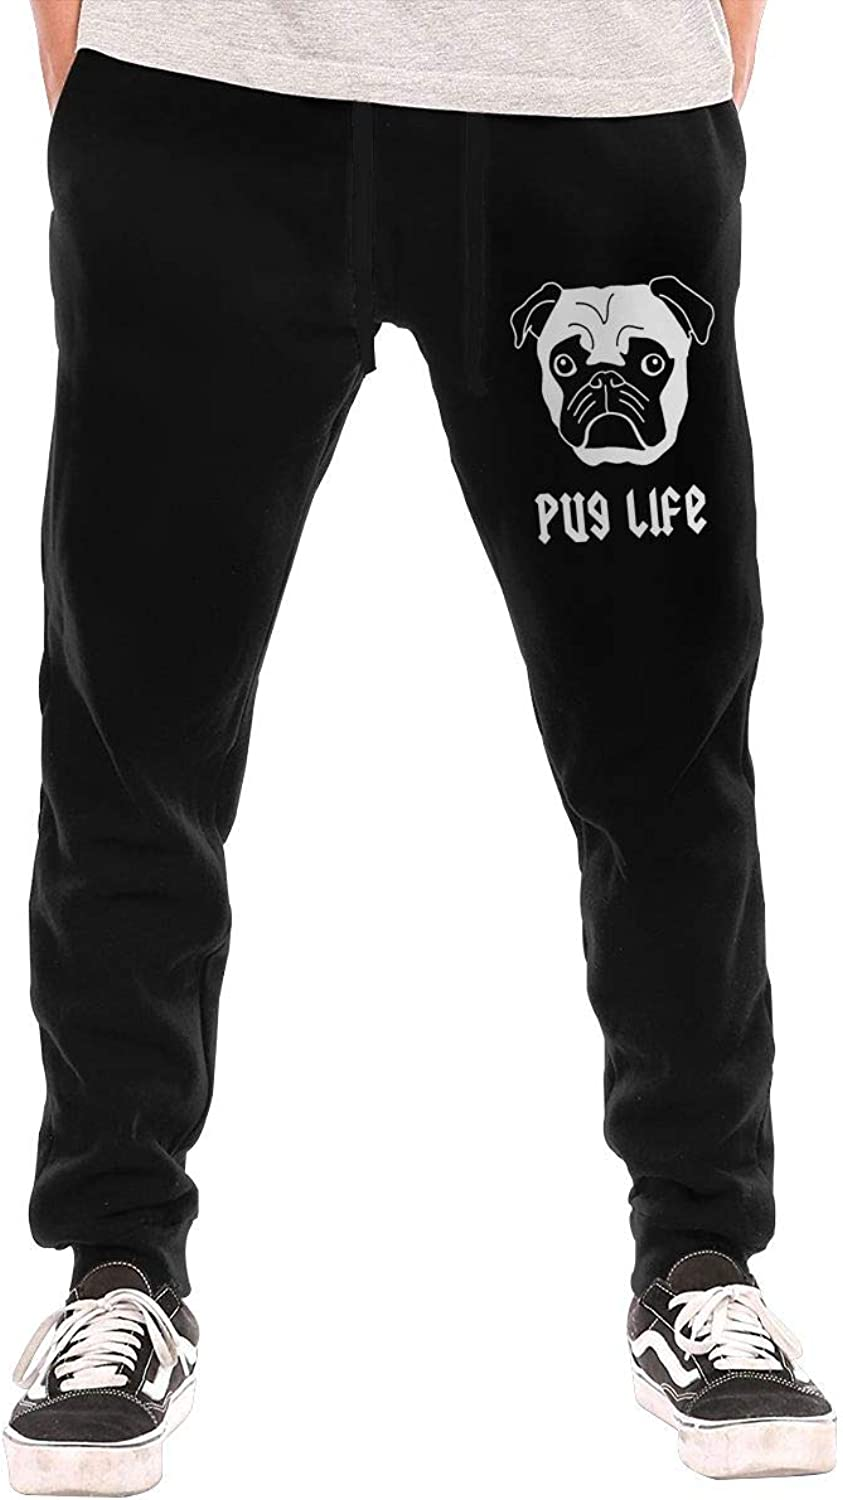 bcd8a6d35a0b Men's Pug Life Joggers Pants Pants Pants With Pockets dfe8be - qrnjh ...